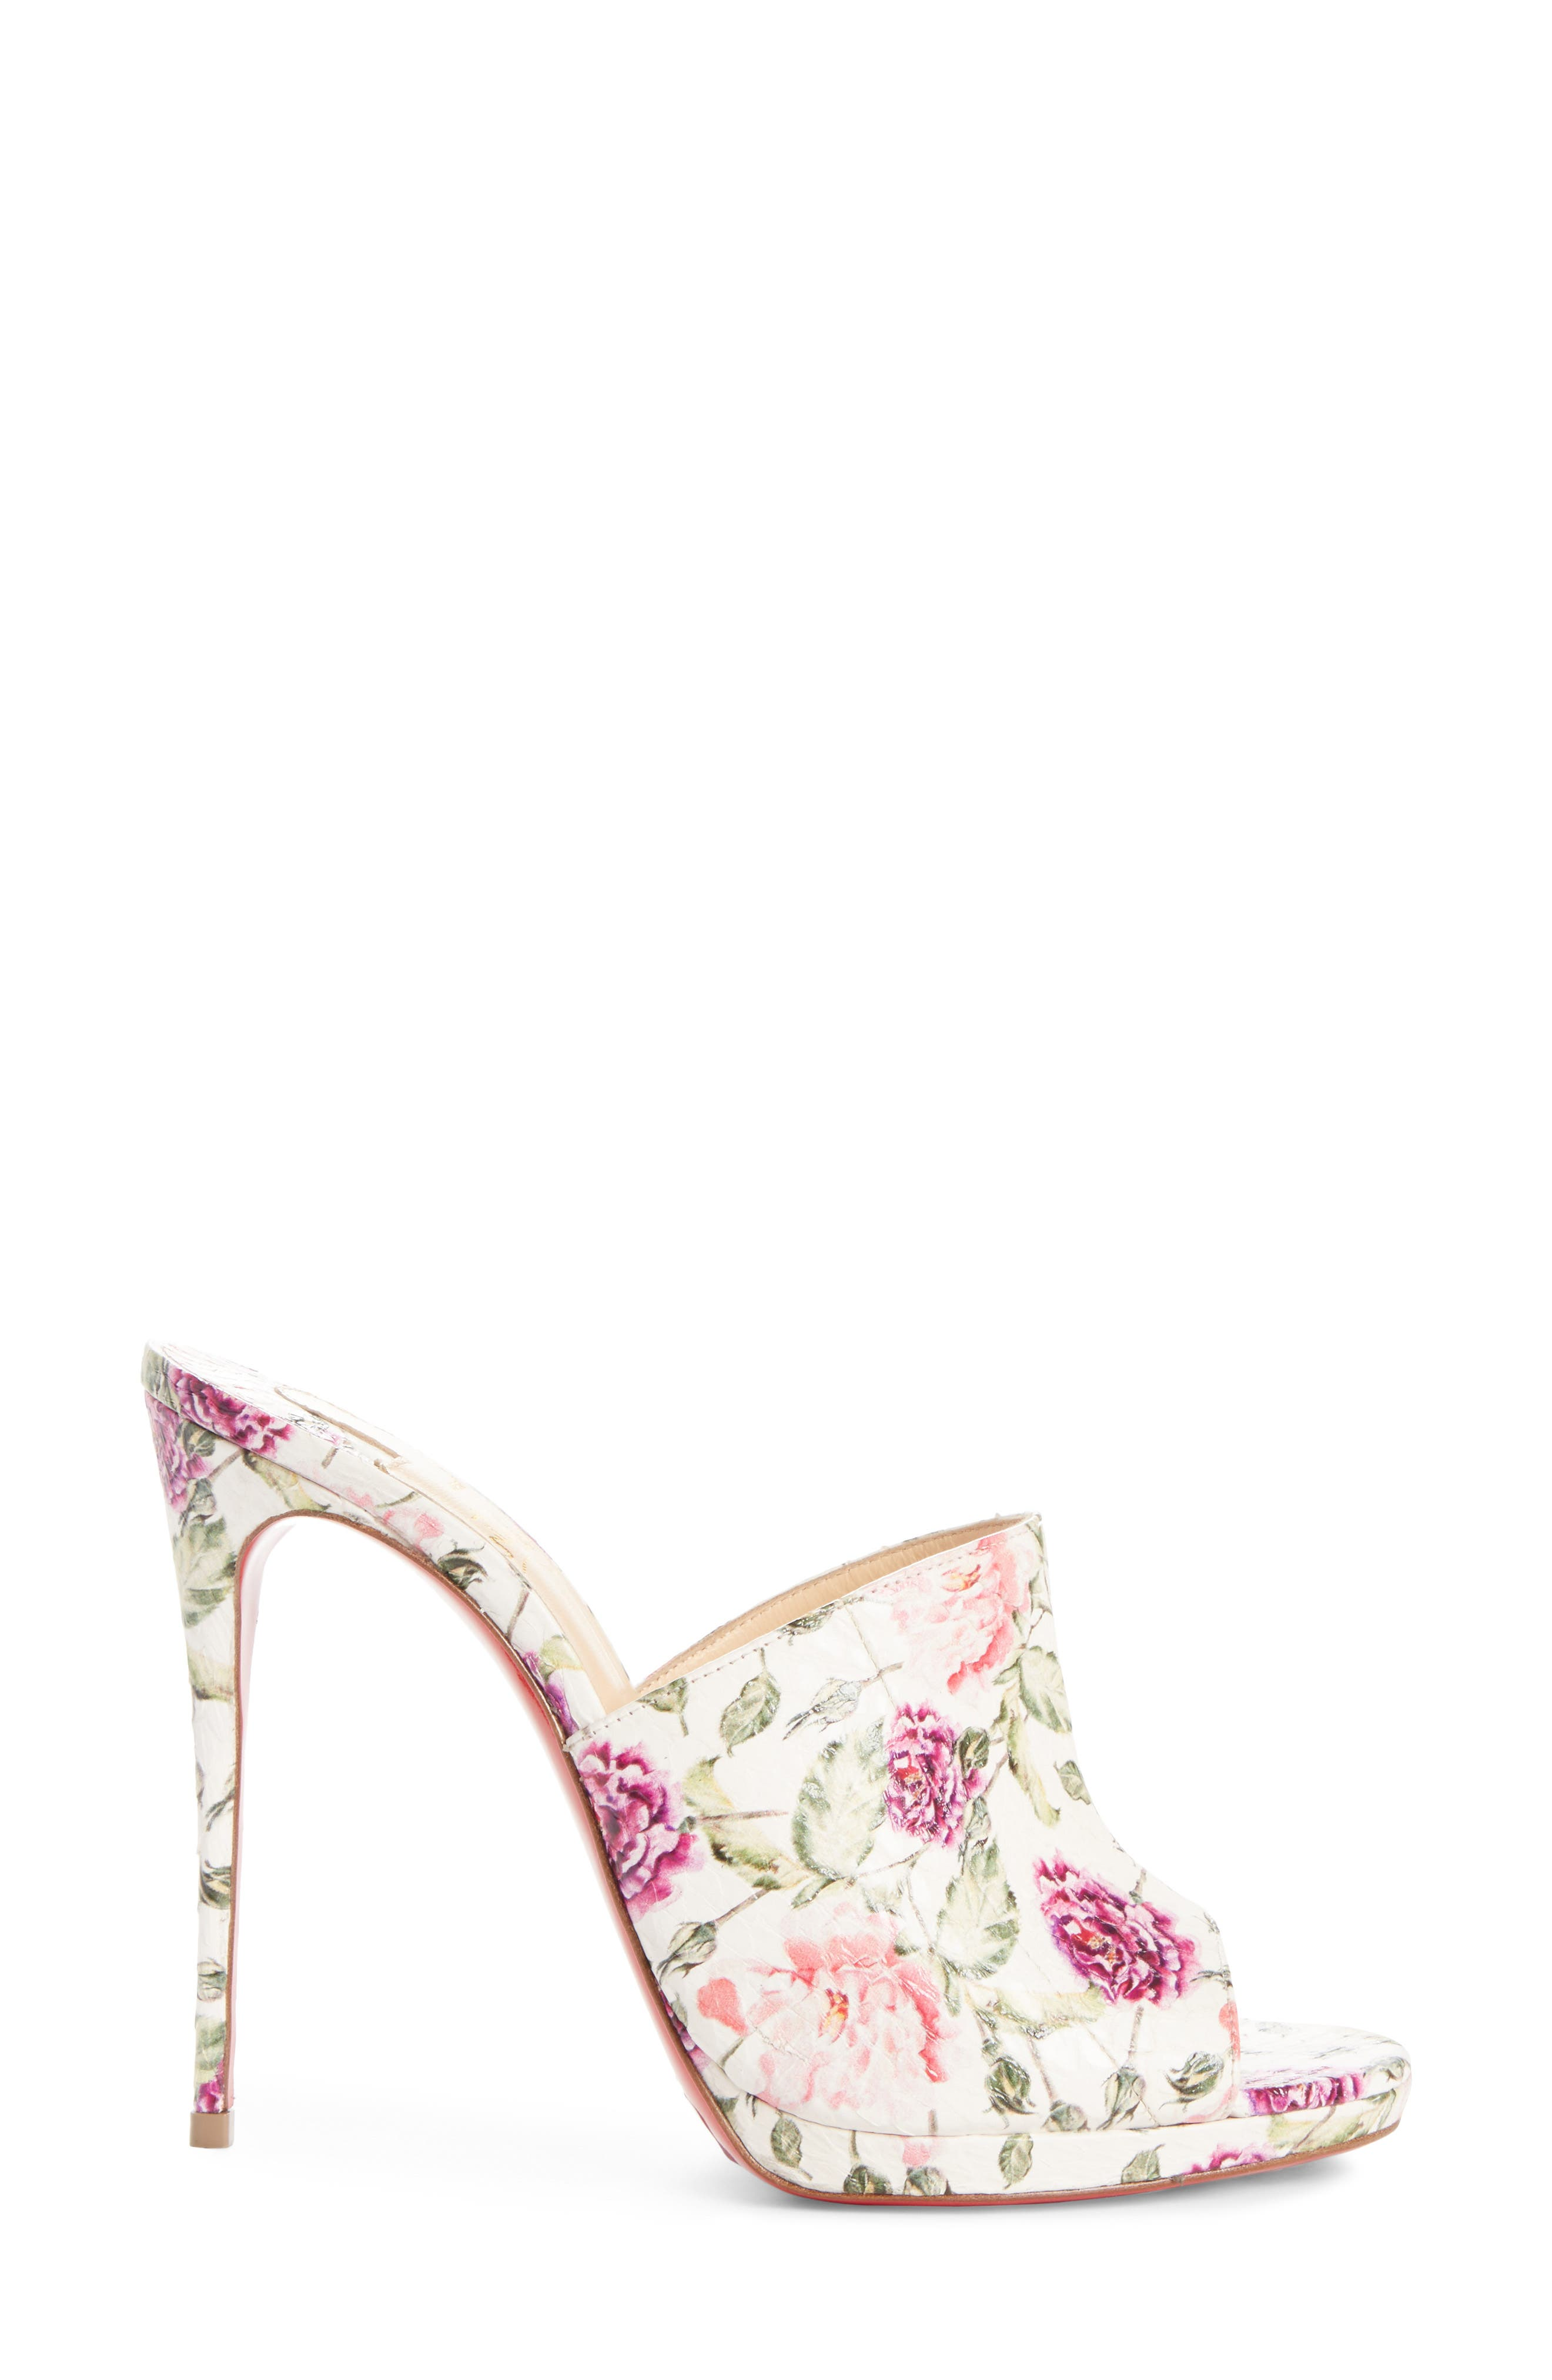 Floral Pigalle Genuine Snakeskin Mule,                             Alternate thumbnail 3, color,                             Latte/ Floral Print